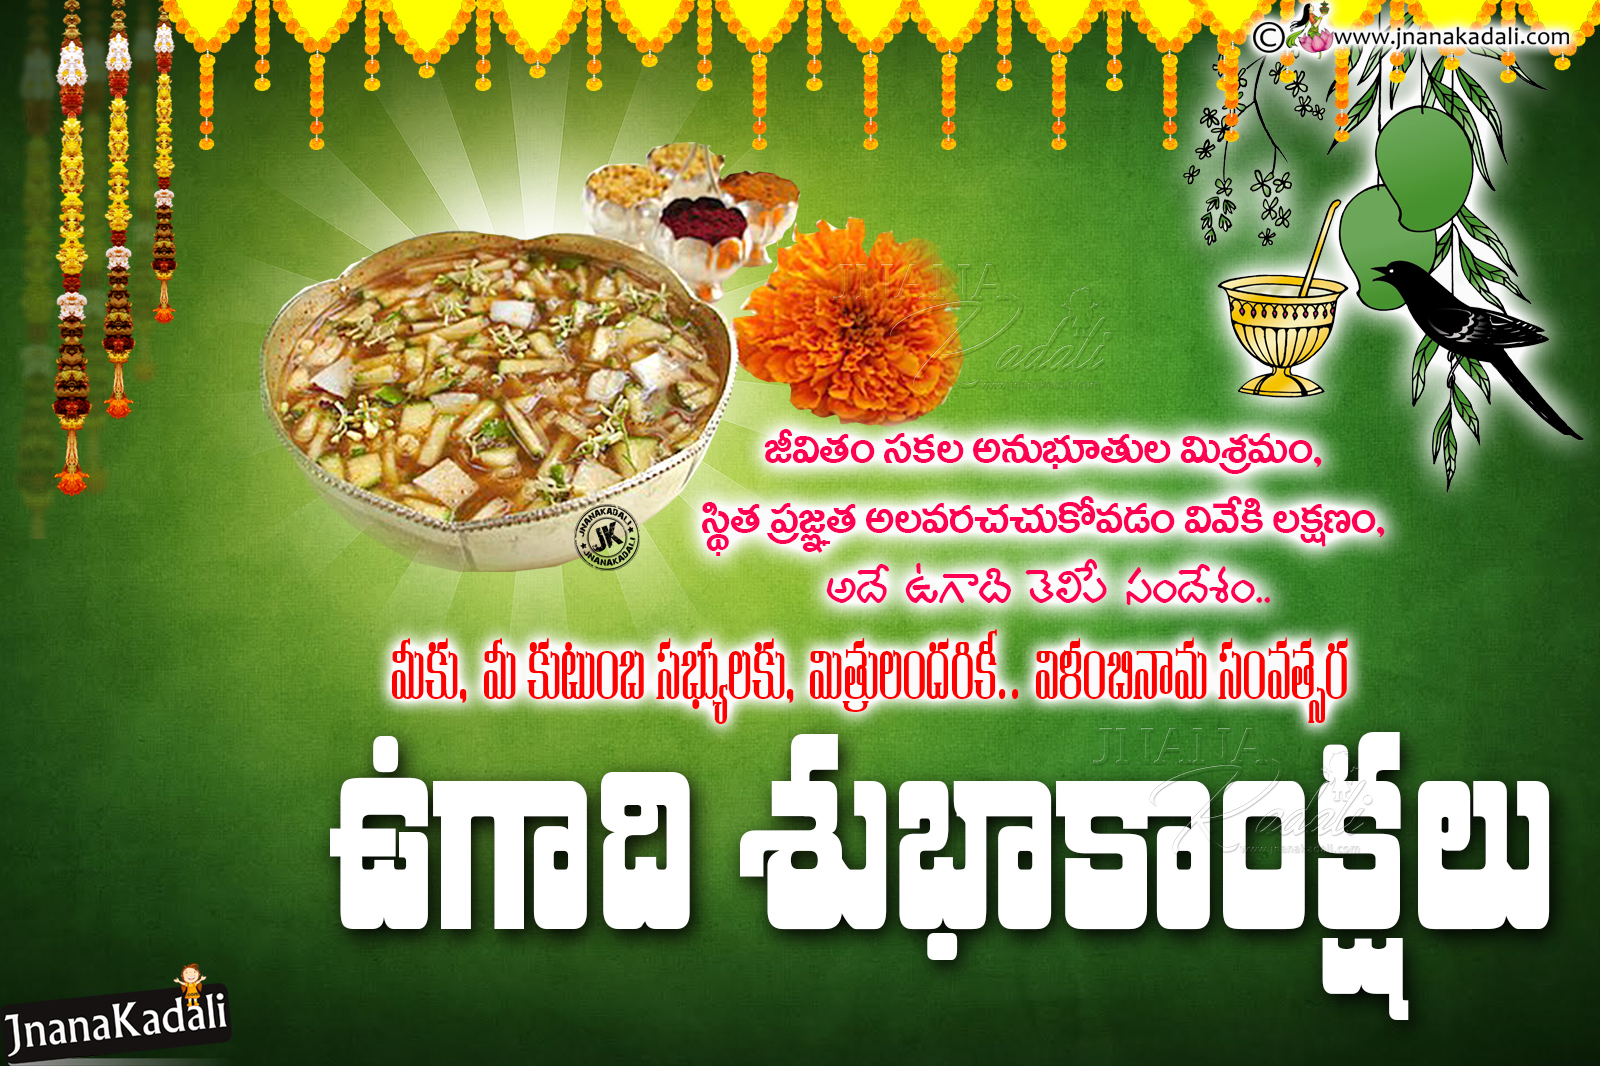 Vilambimana Samvatsara Ugadi Subhakankshalu In Telugu Wish You Happy